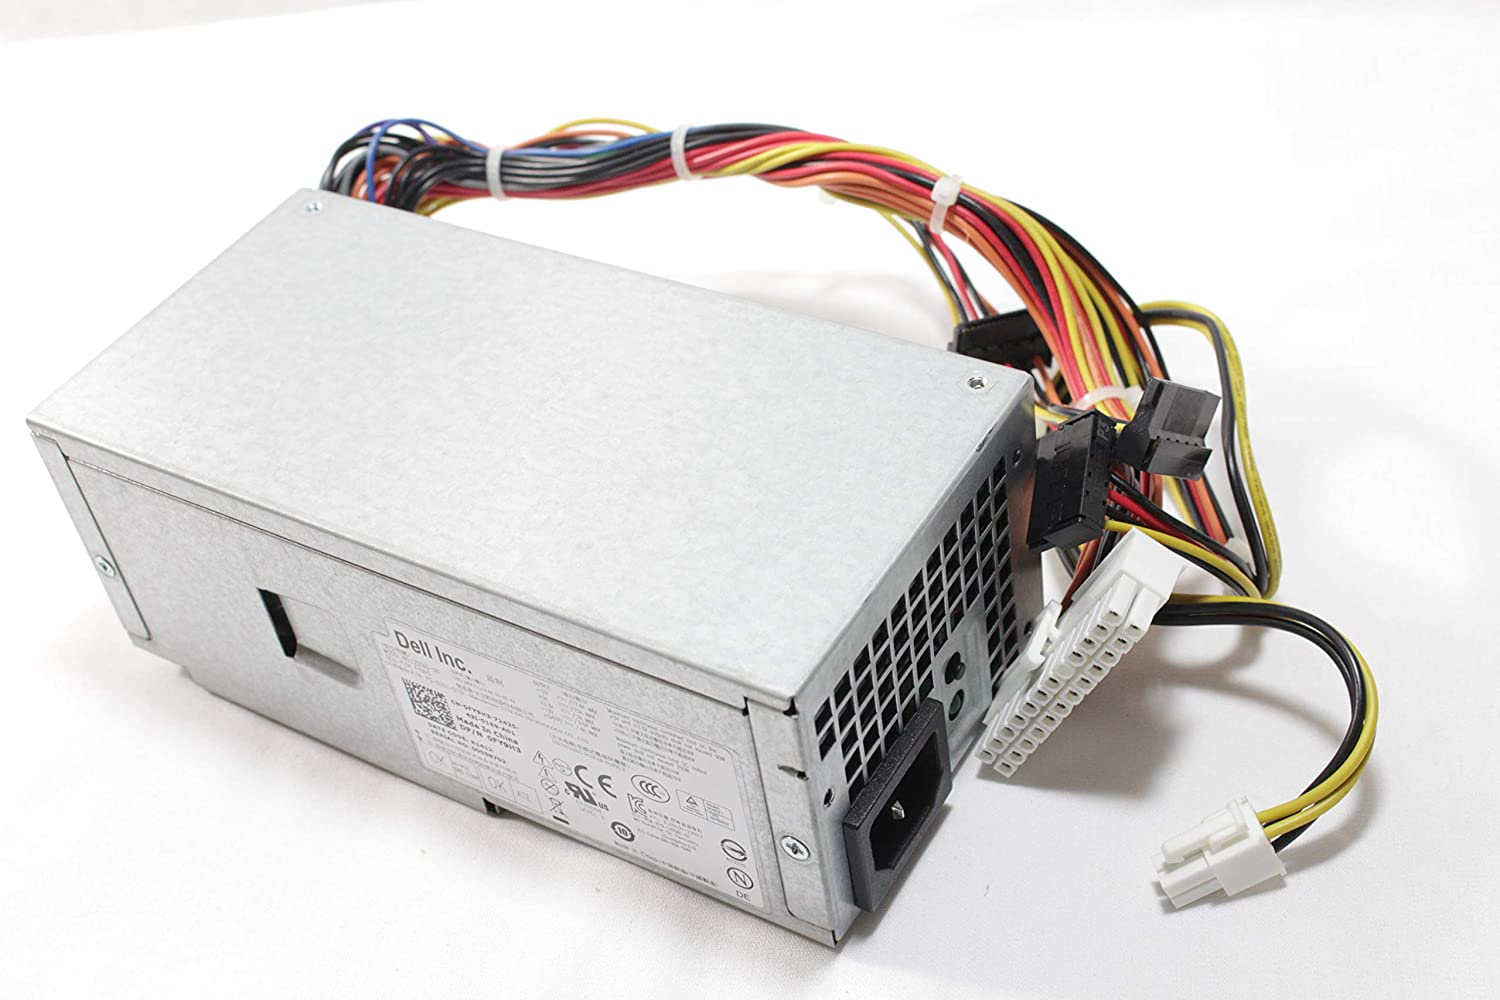 Dell Switching Power Supply Unit PSU Optiplex 390 790 990 3010 Inspiron 537s 540s 545s 546s 560s 570s 580s 620s Vostro 200s 220s 230s 260s 400s Slim DT fY9H3 375CN 6MVJH 76VCK 7GC81 CYY97 PS-5251-08D